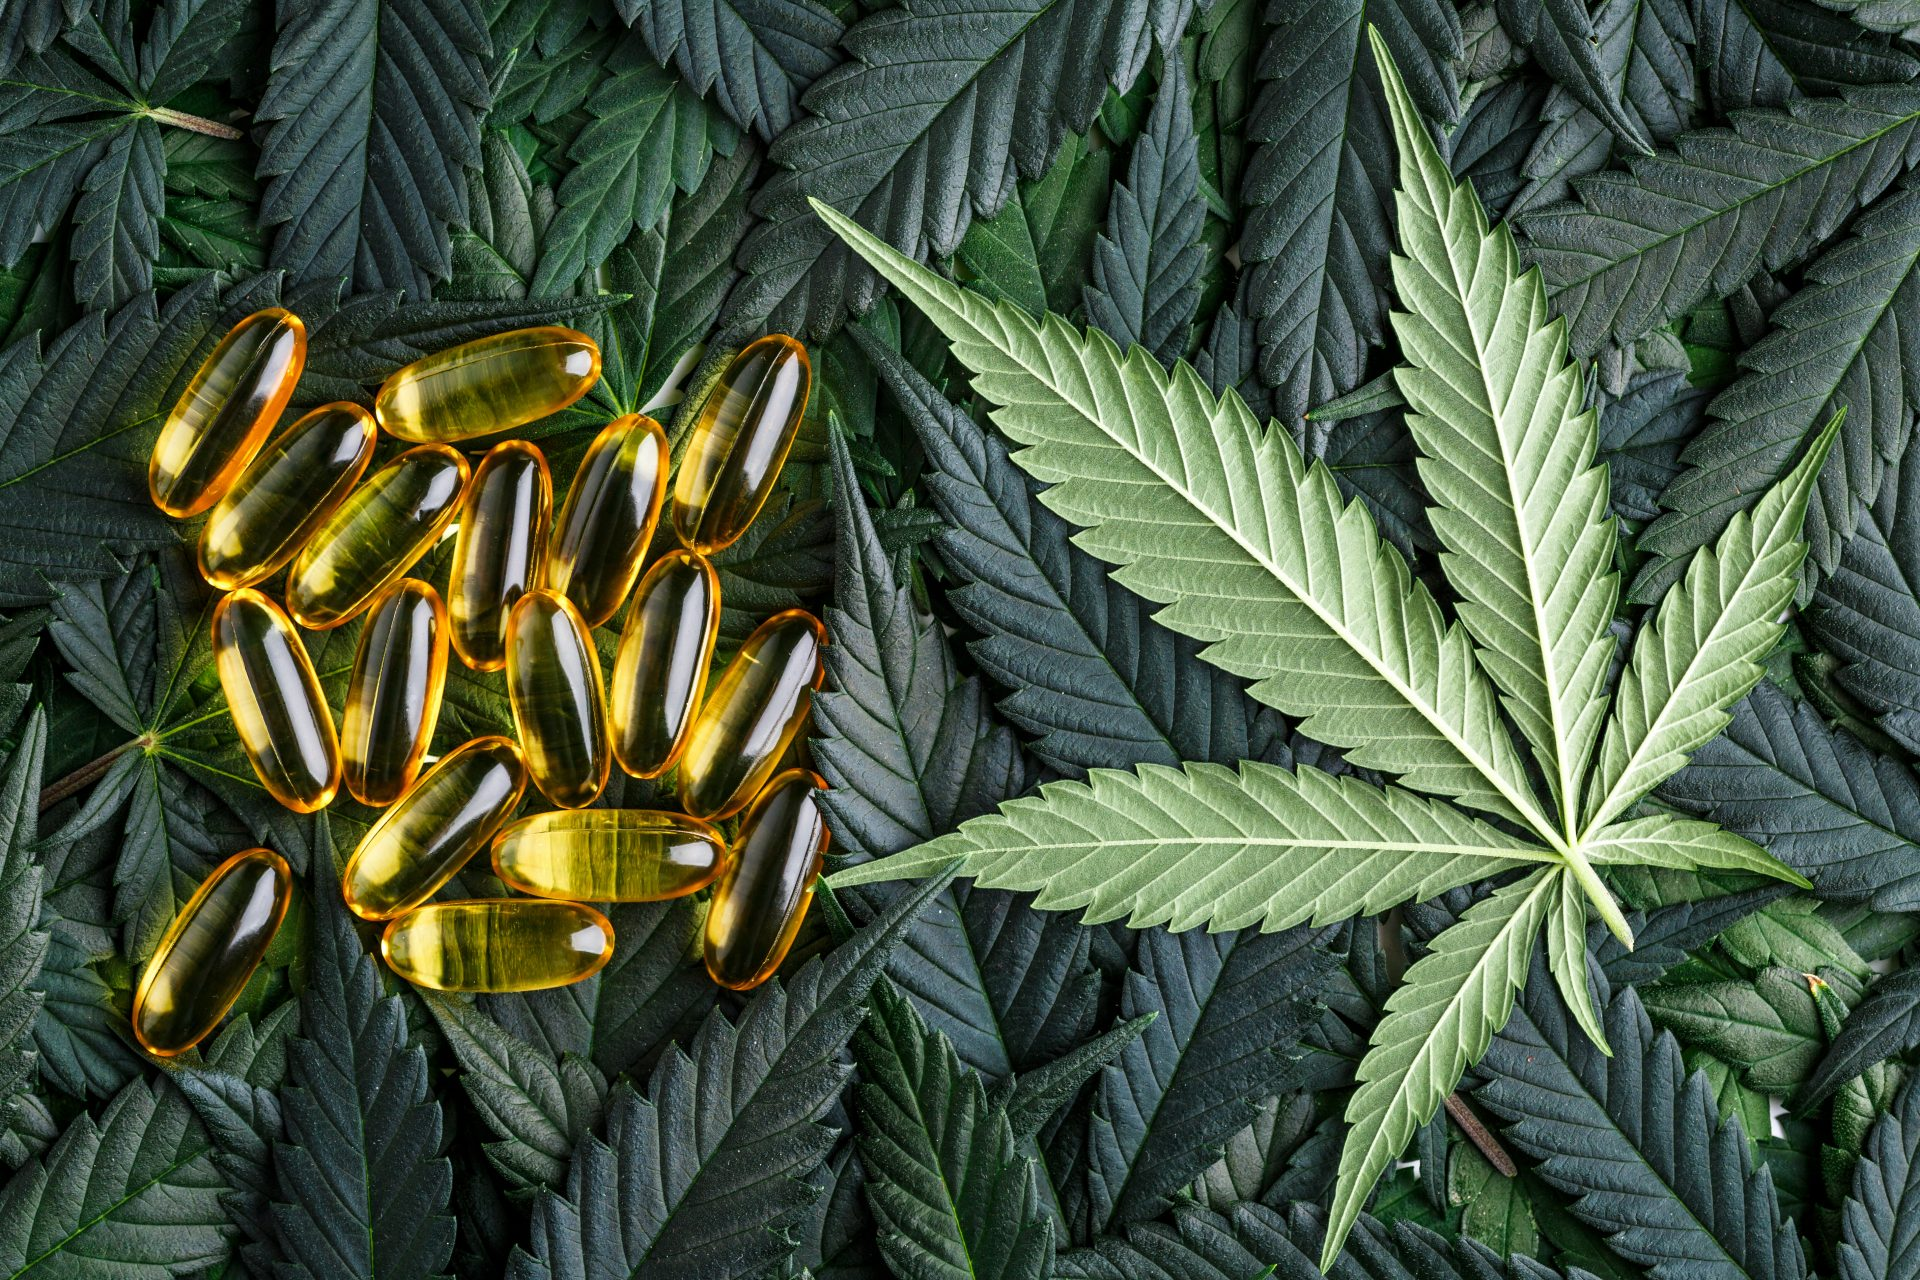 THC Capsules and Cannabis Leaf